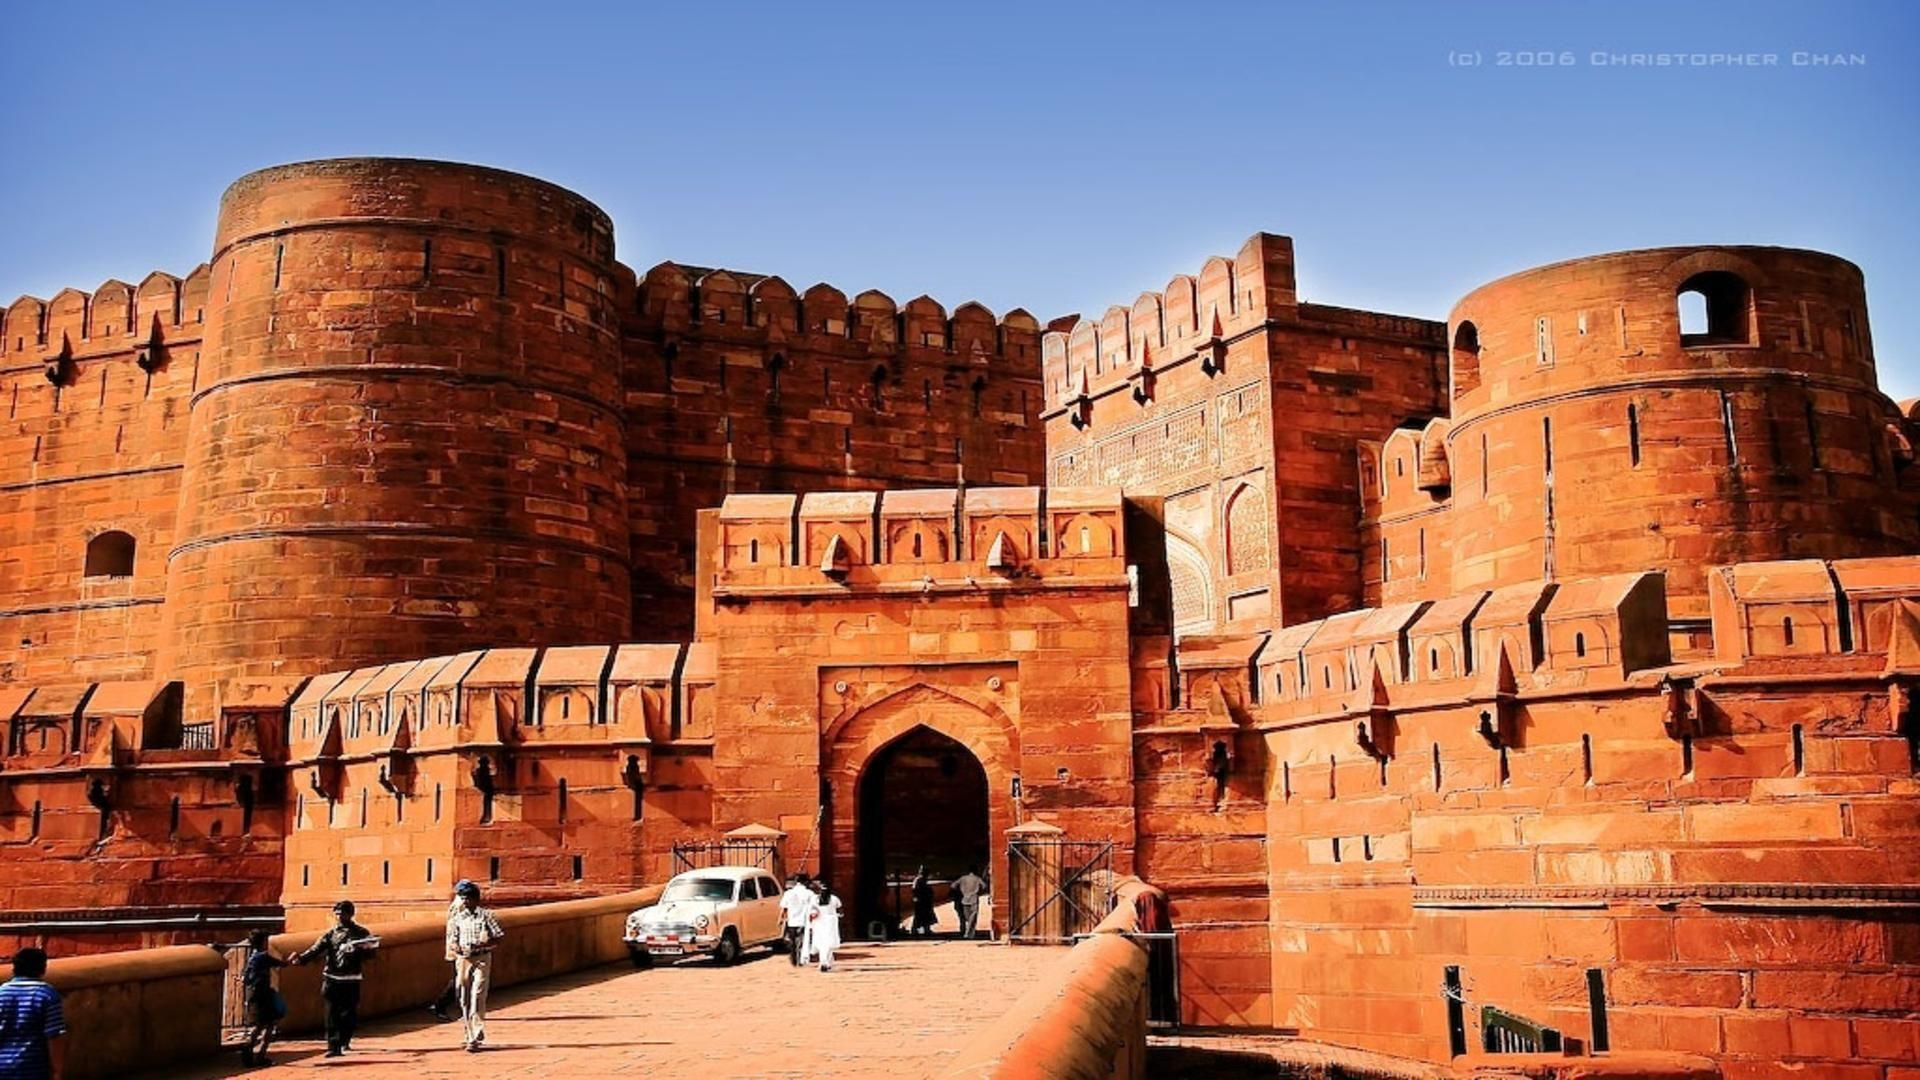 red fort agra history in hindi languag History of red fort, agra, uttar pradesh agra fort is a unesco world heritage site located in agra, india the fort is also known as lal qila, fort rouge and red fort of.